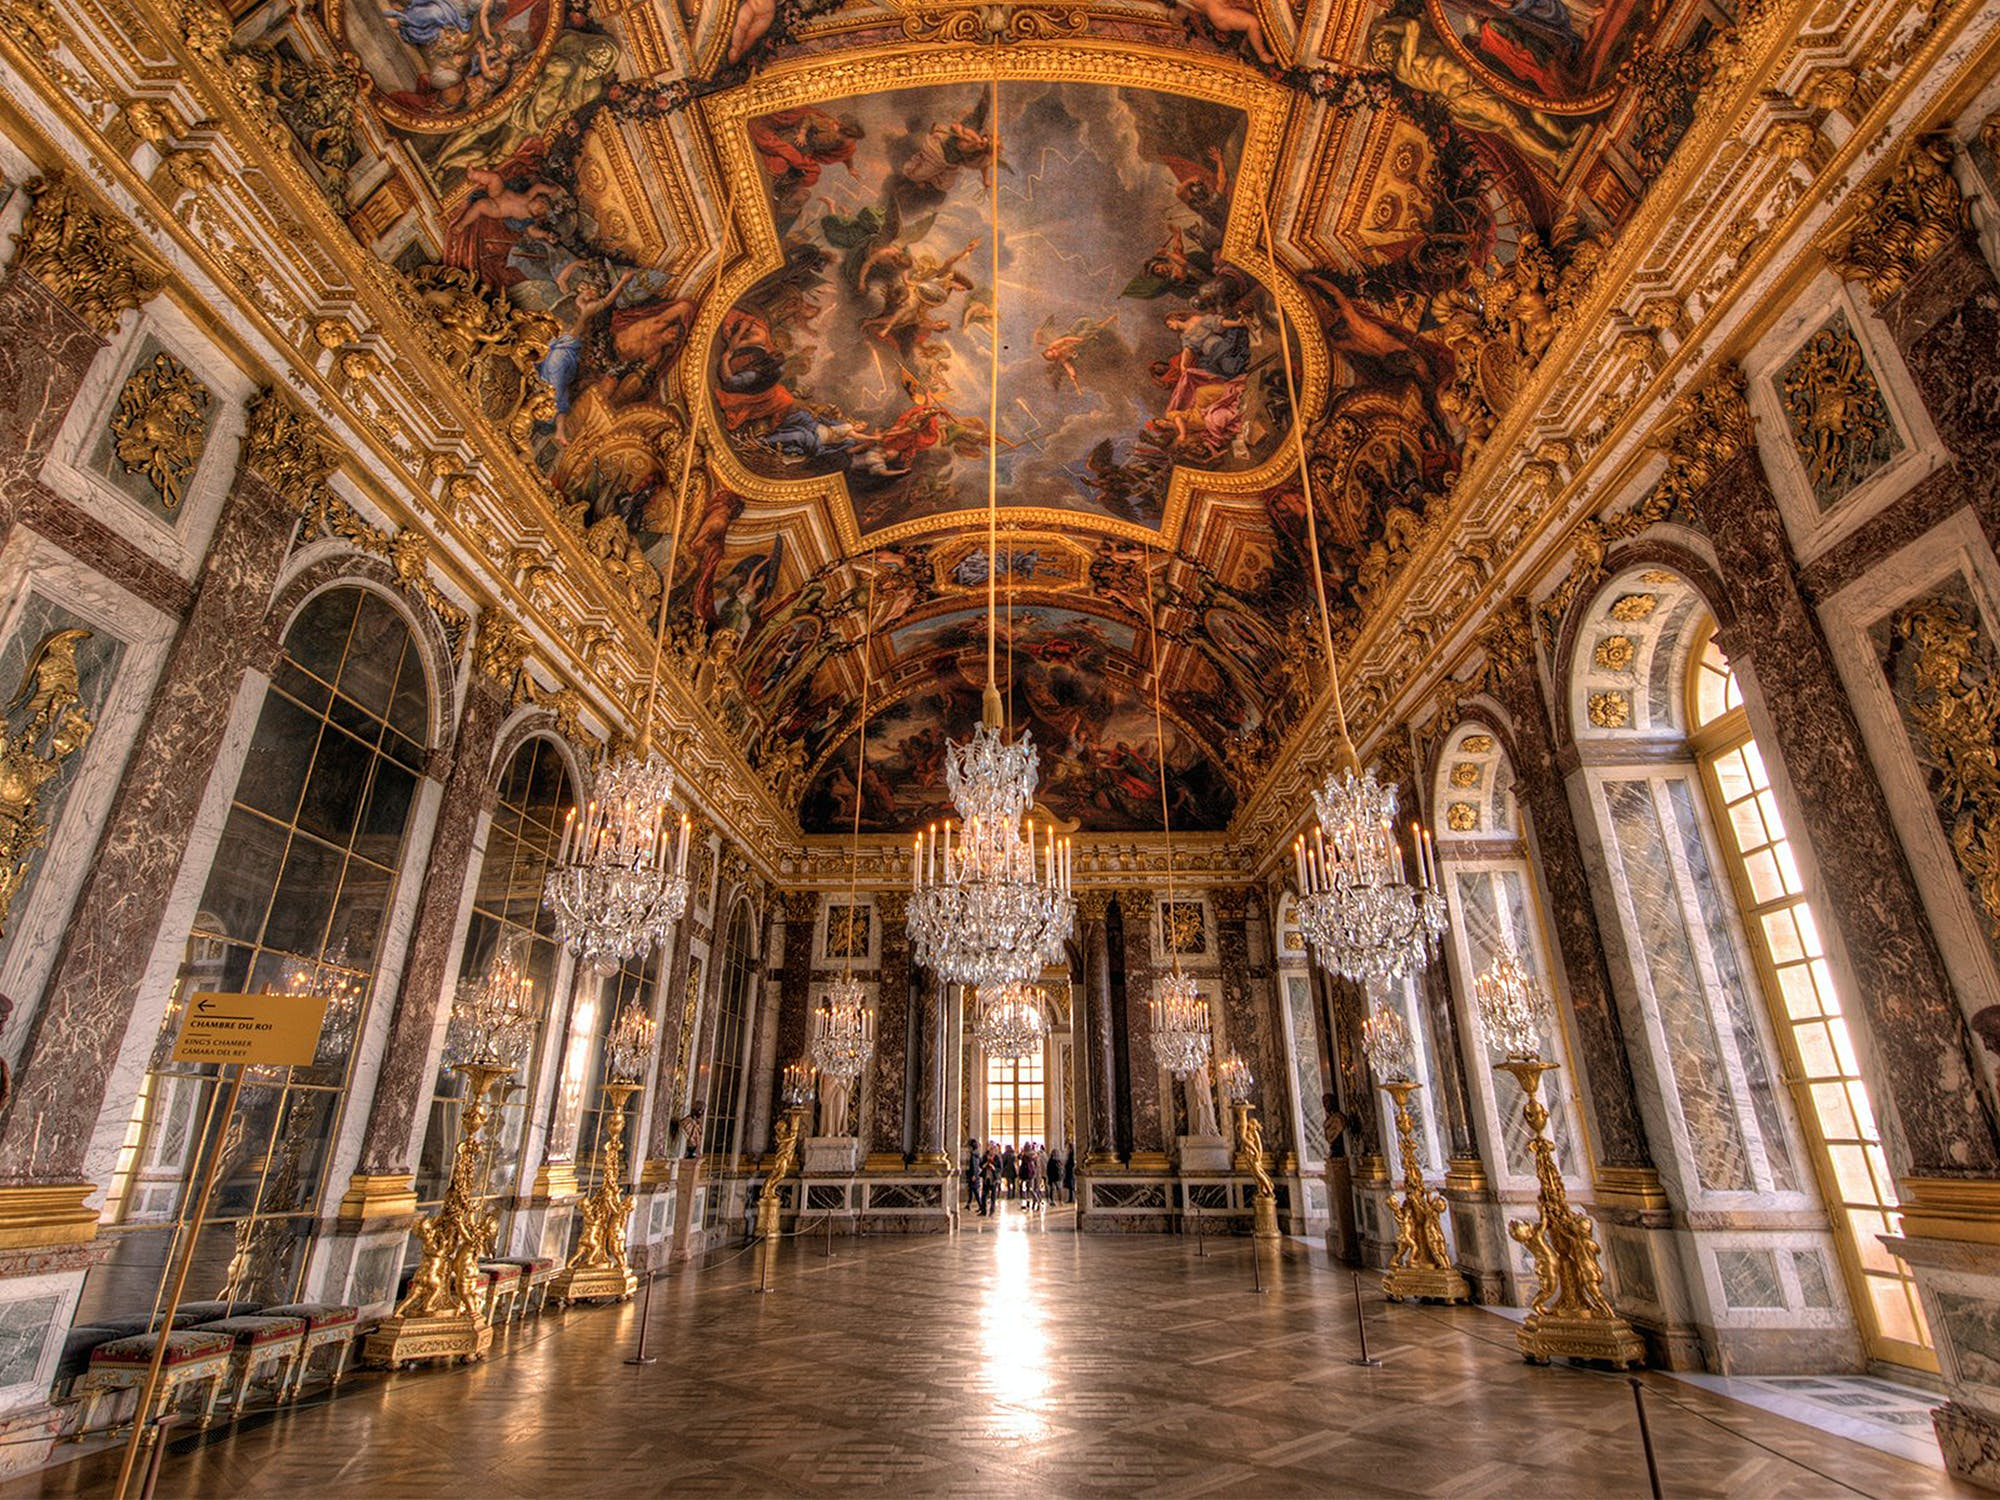 VERSAILLES_PALACE - undefined